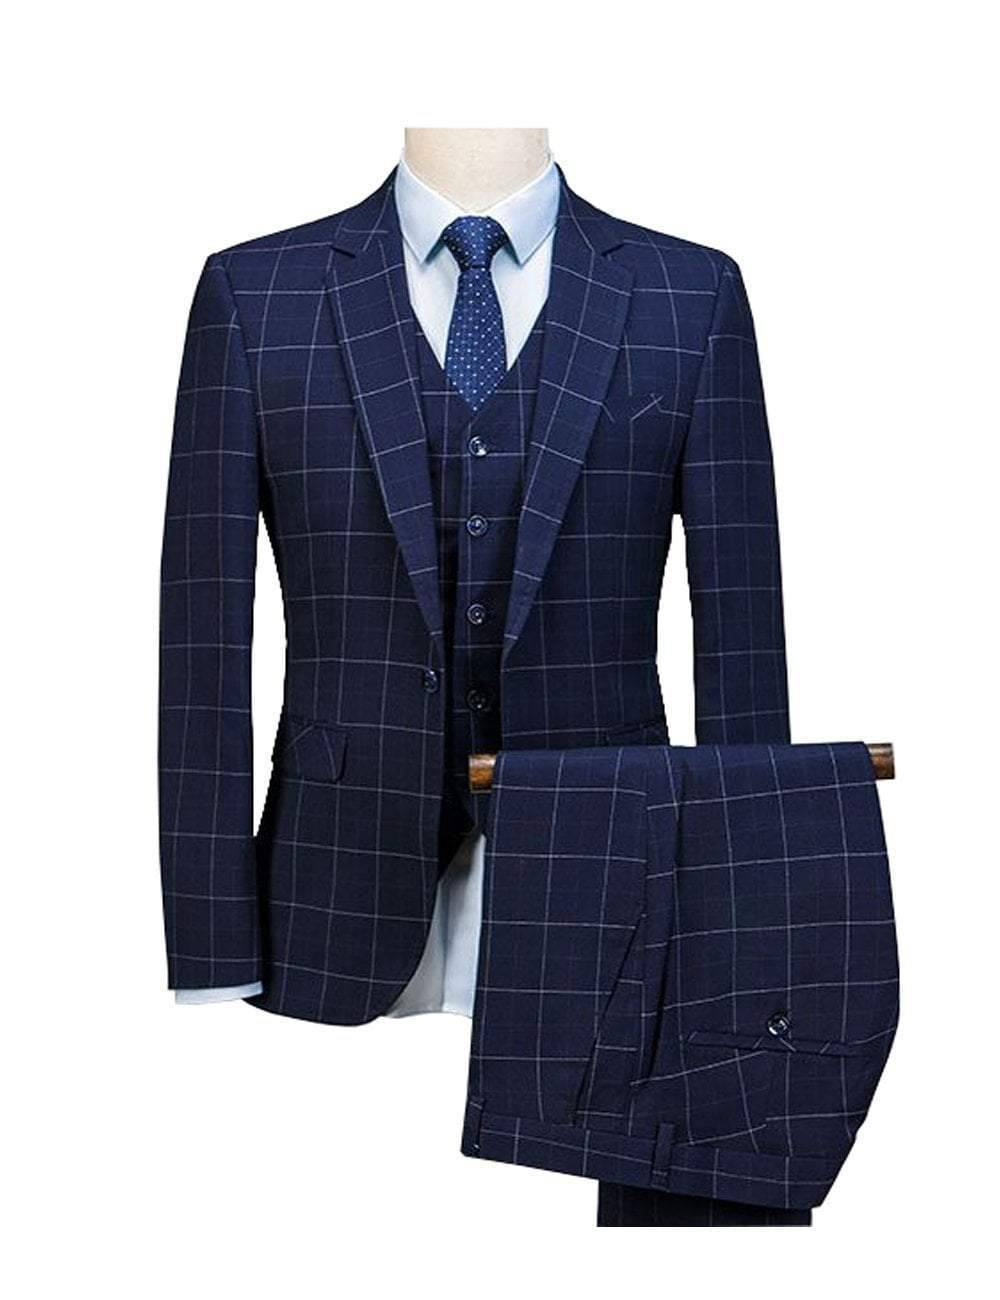 Rendition by Caprici Men's 3 Piece Suit (Jacket+Pants+Vest)  -  vest / S  -  Suits  - SNS Outlet